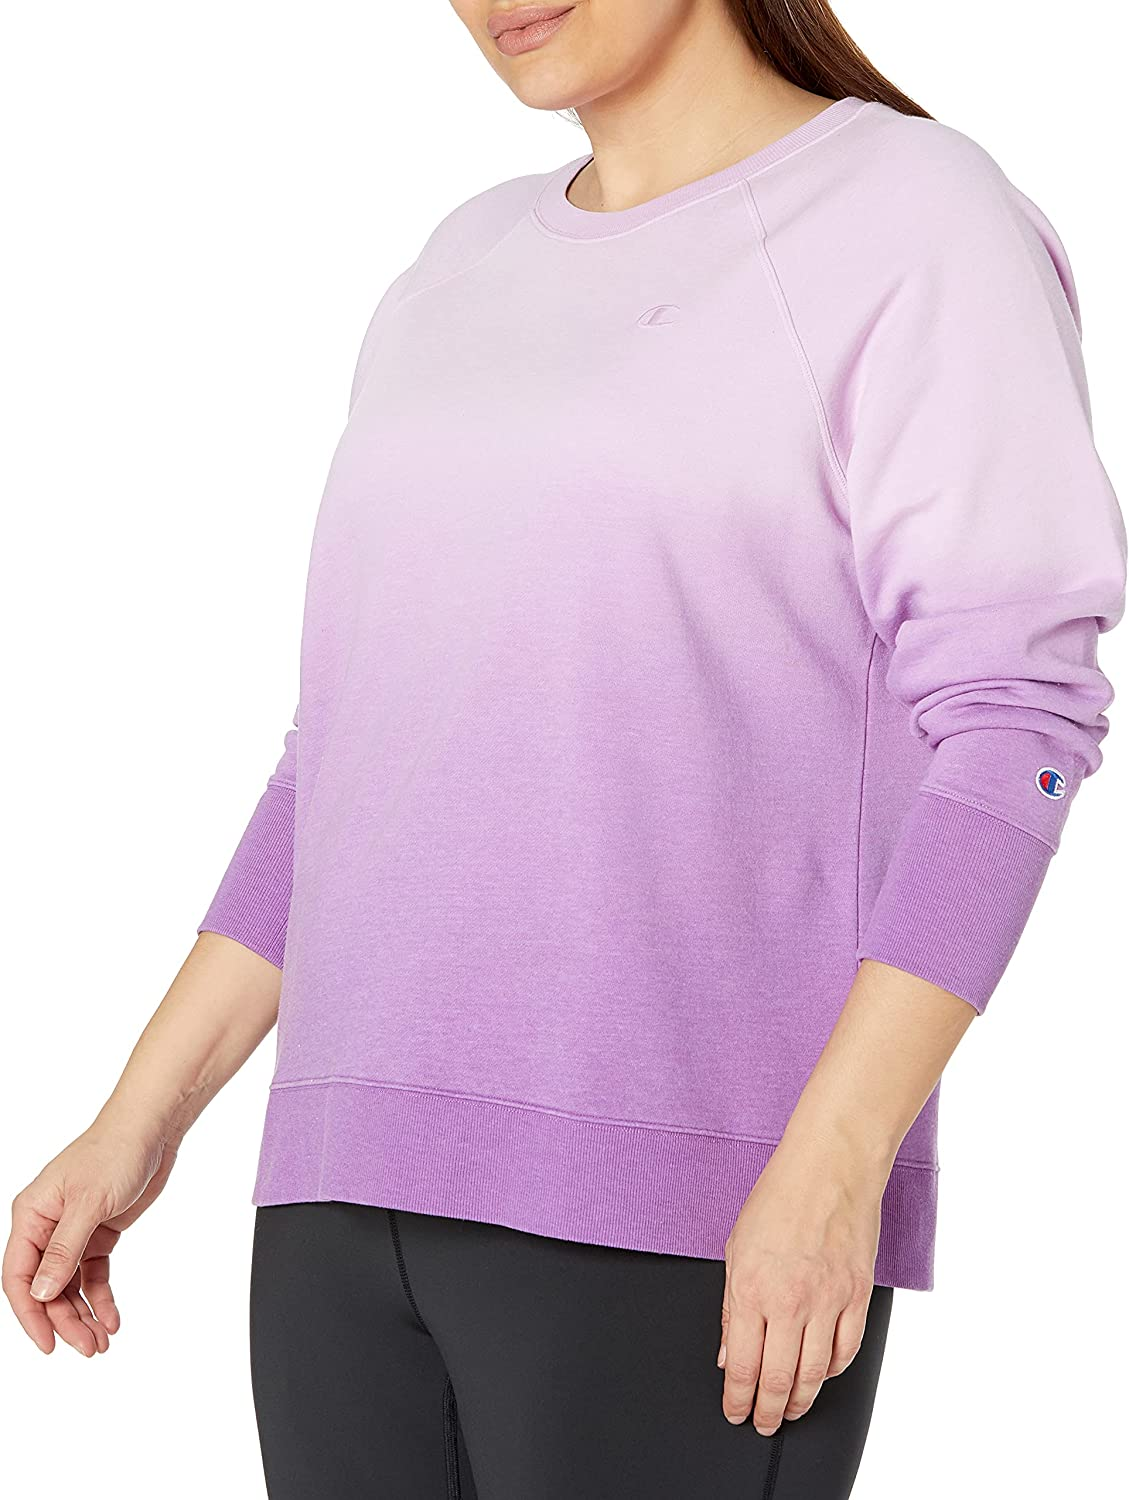 Champion Women's Plus Powerblend Ombre Cropped Crew